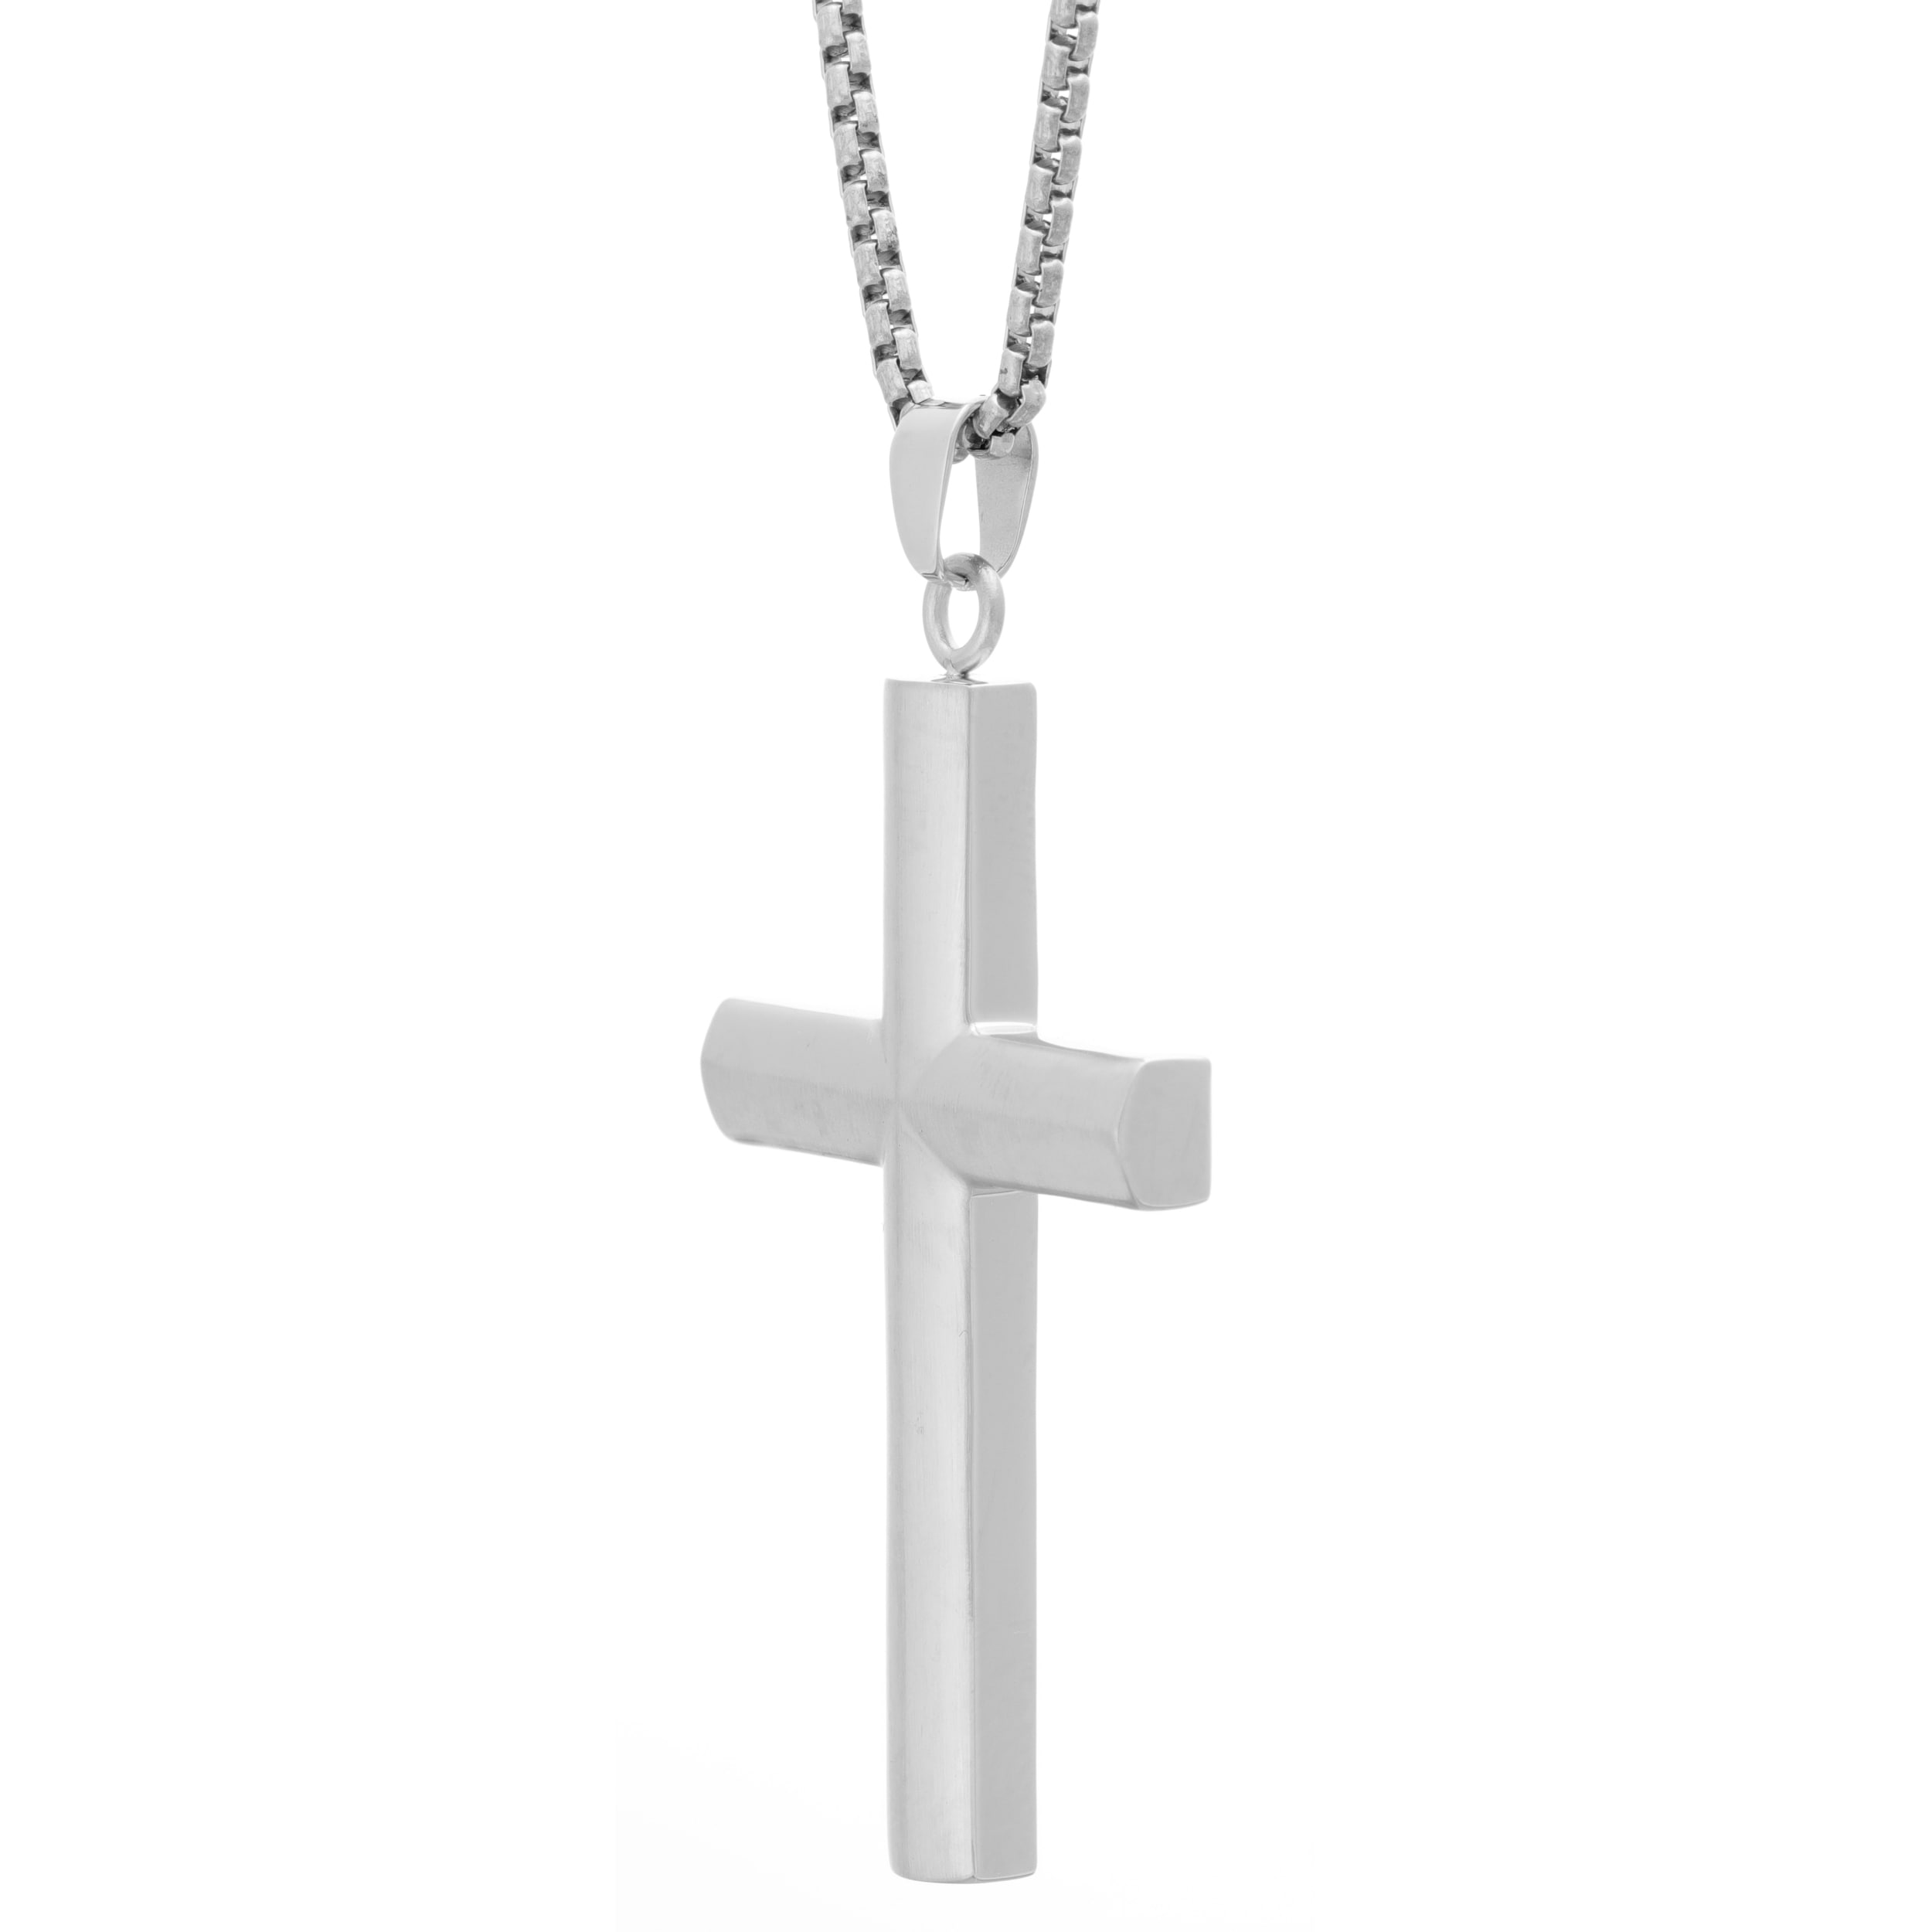 1d2a34bdad4 Shop Stainless Steel Men s Cross Pendant Necklace - On Sale - Free Shipping  On Orders Over  45 - Overstock - 12251043